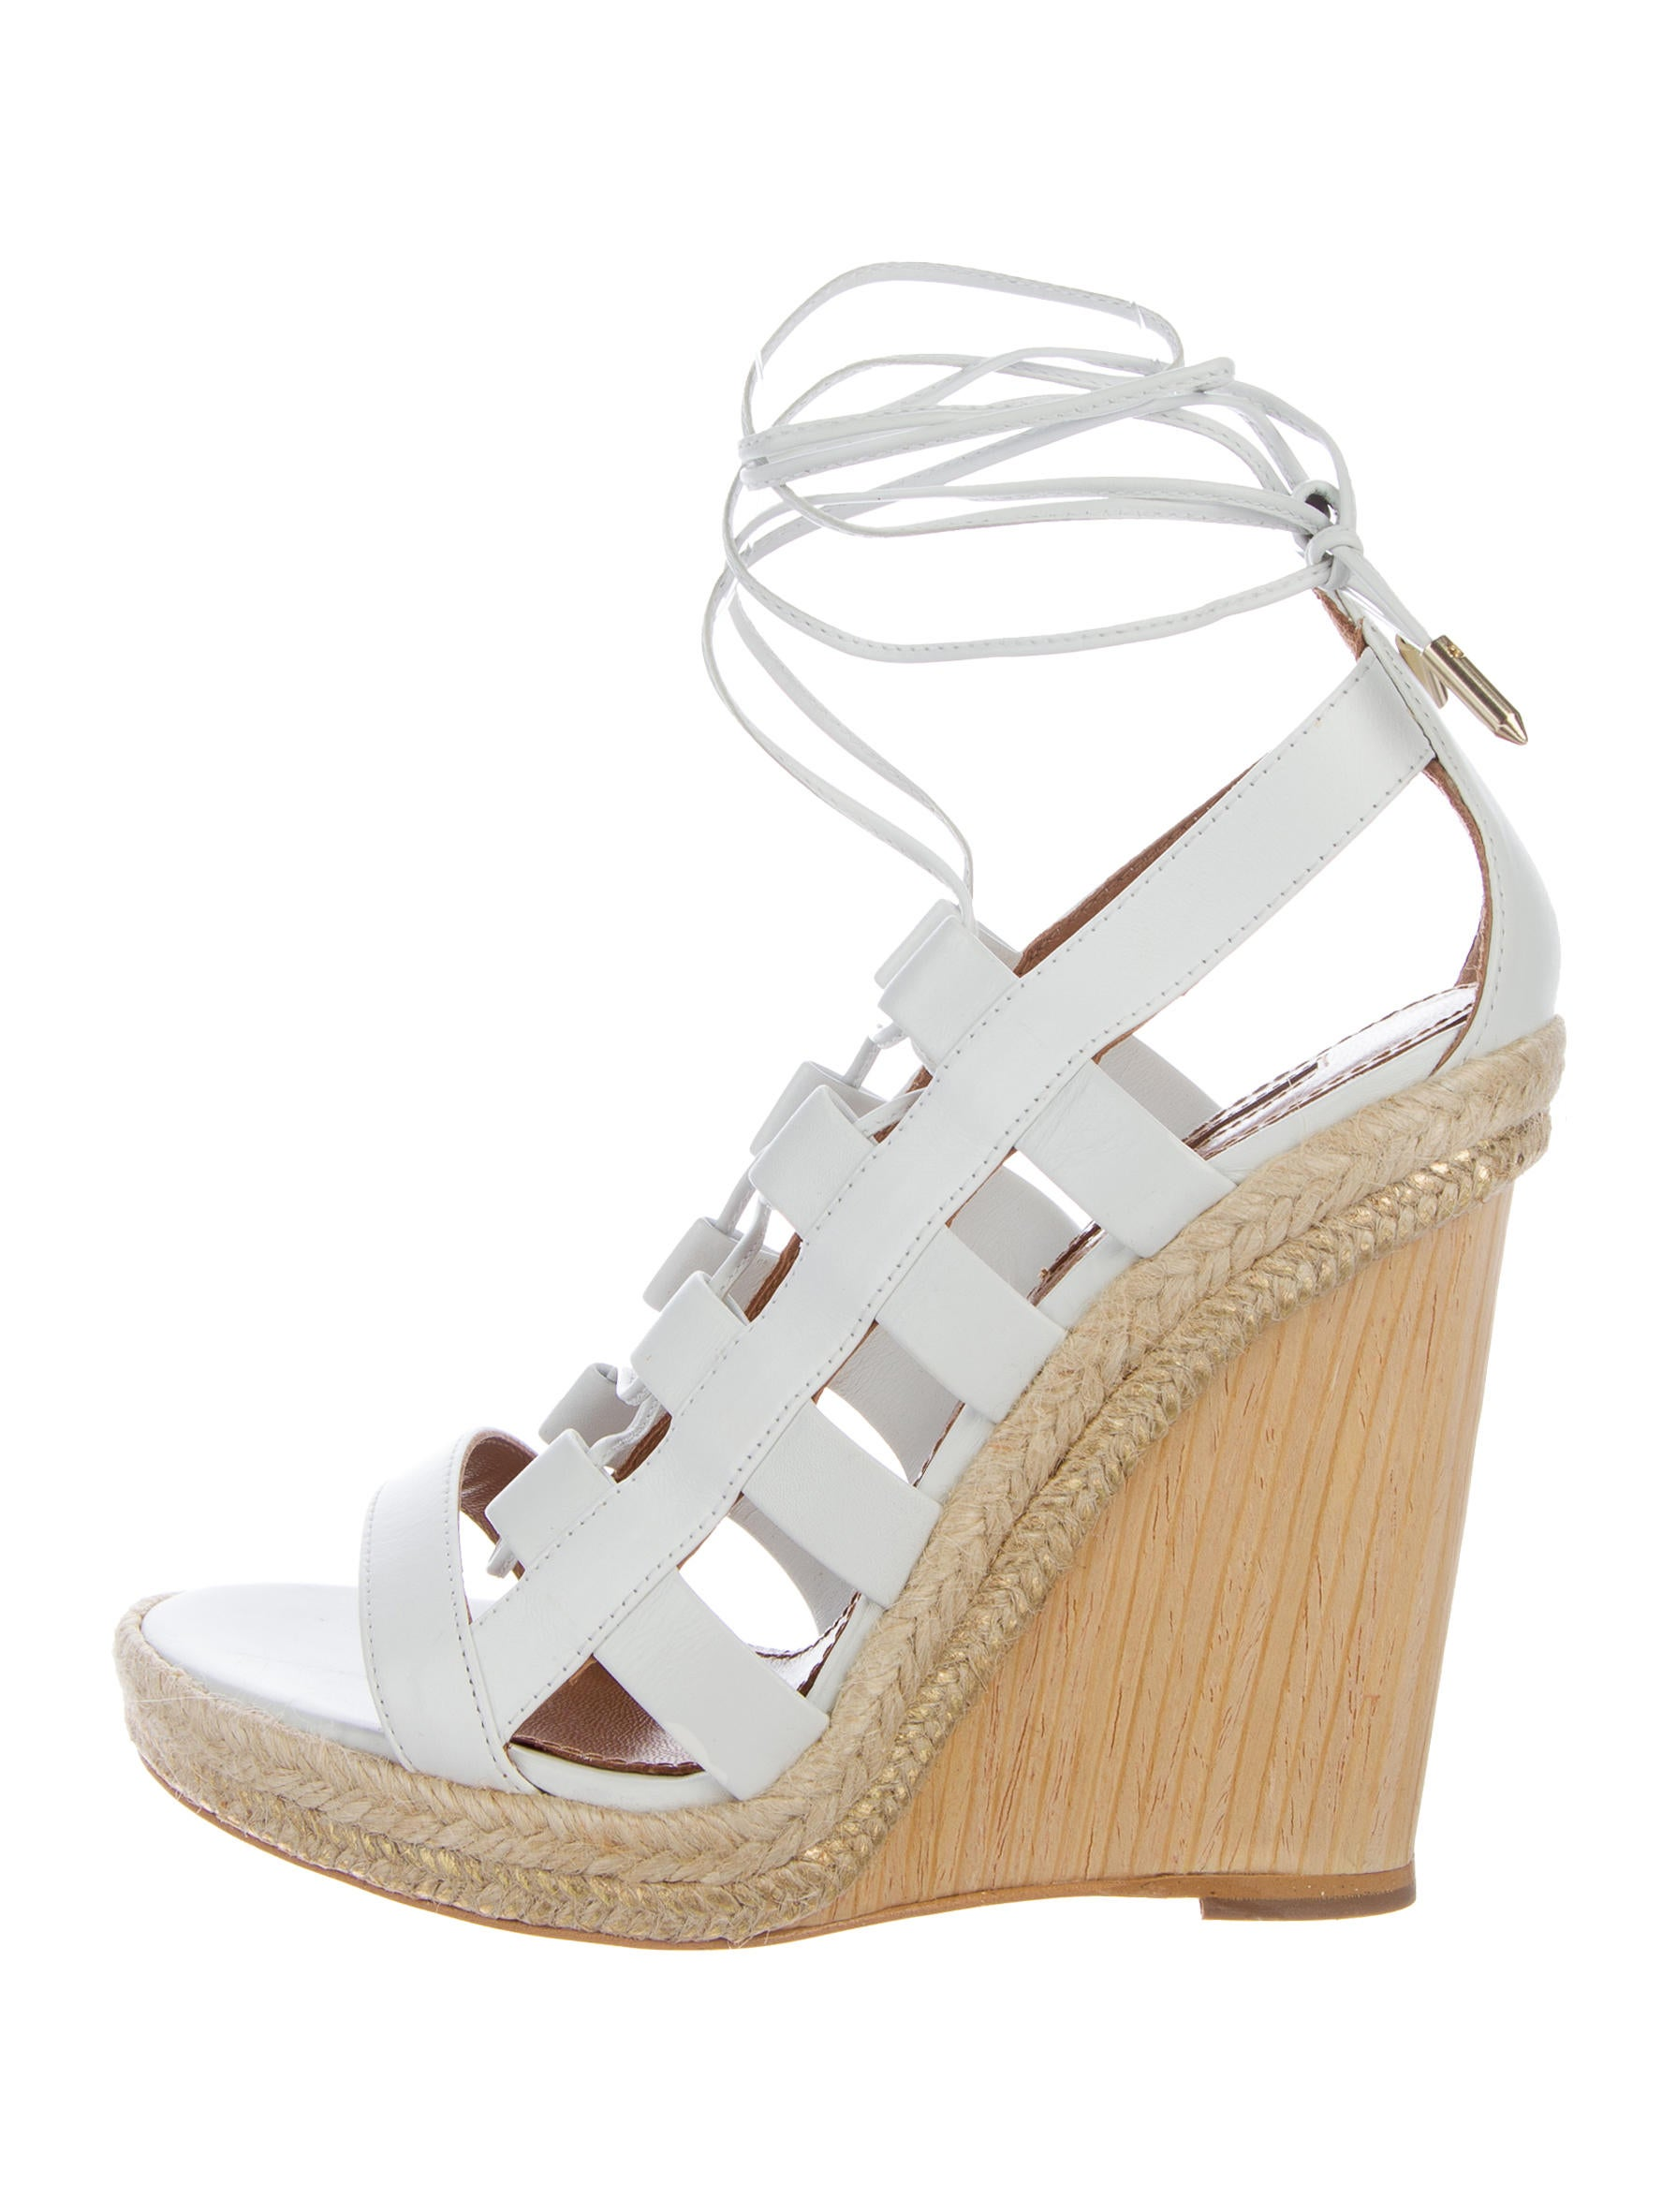 Aquazzura Amazon Wedge Sandals - Shoes - AQZ23823 | The ...